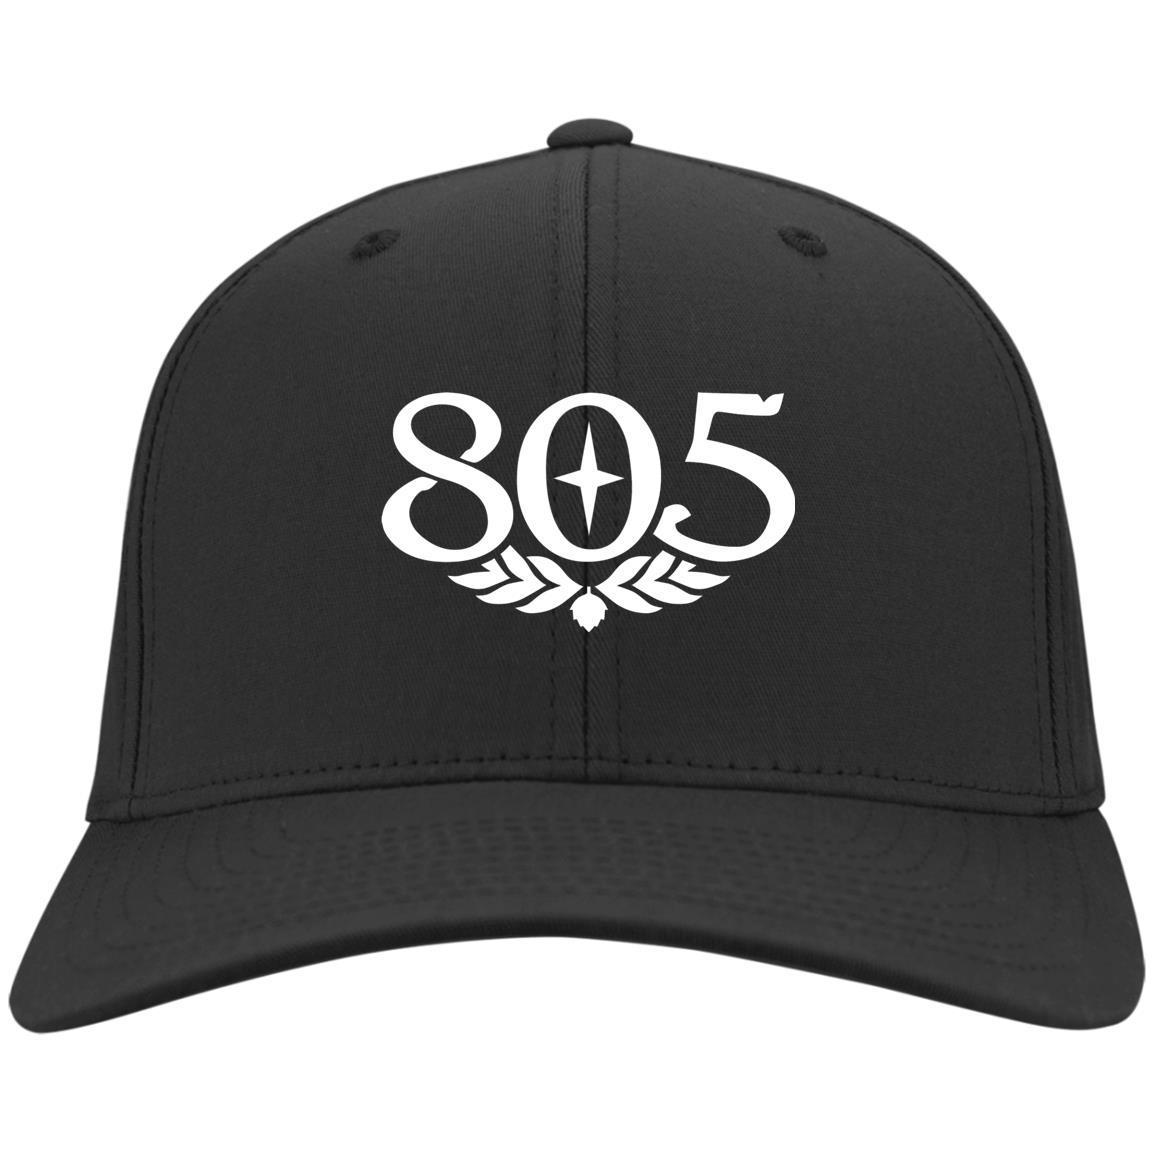 805 Beer – Port & Co. Twill Cap